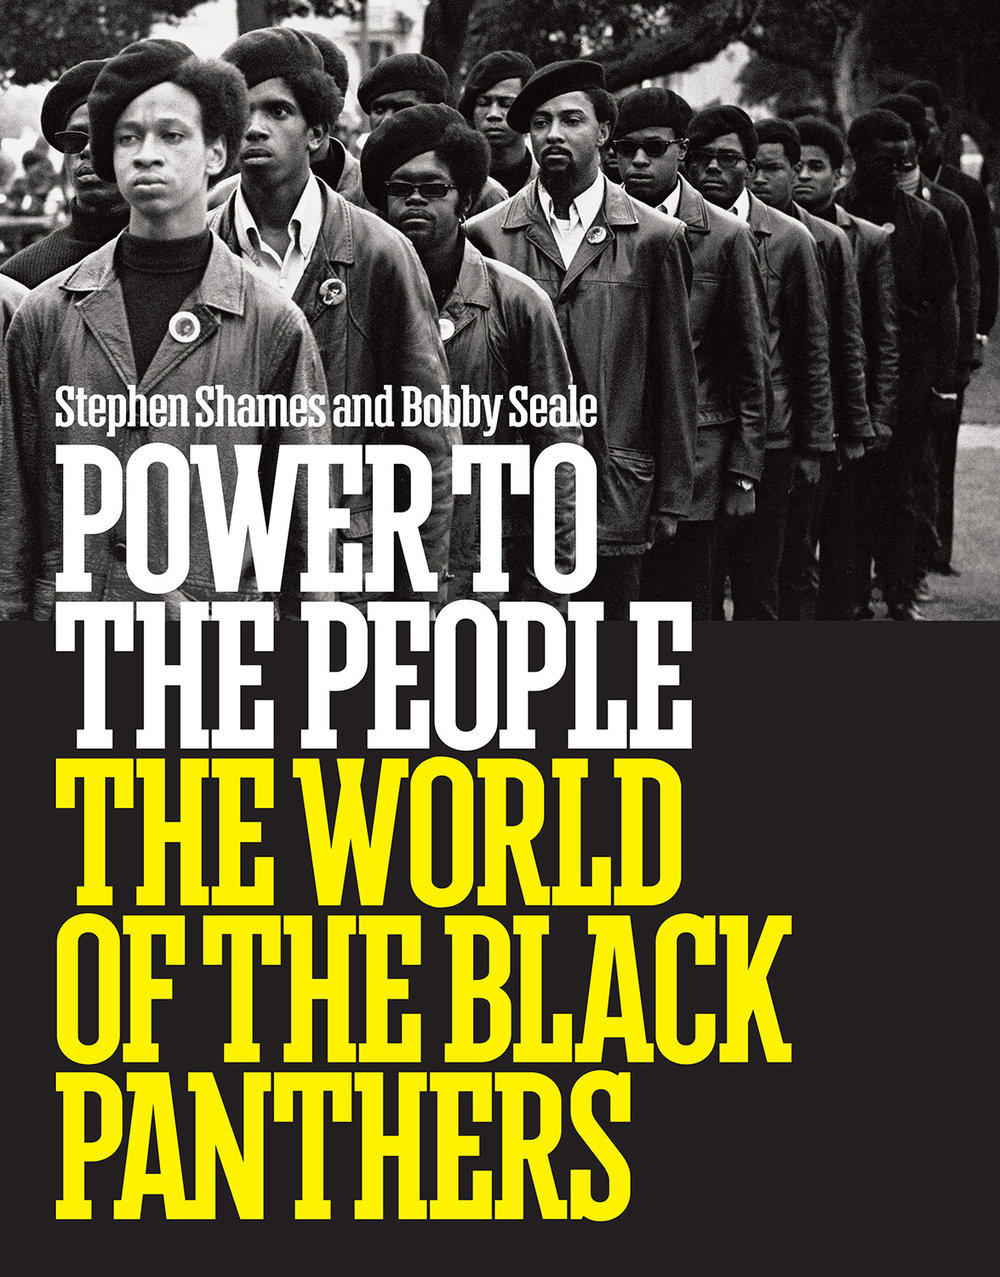 © POWER TO THE PEOPLE: THE WORLD OF THE BLACK PANTHERS photographs by Stephen Shames; Text by Bobby Seale published by Abrams www.abramsbooks.com